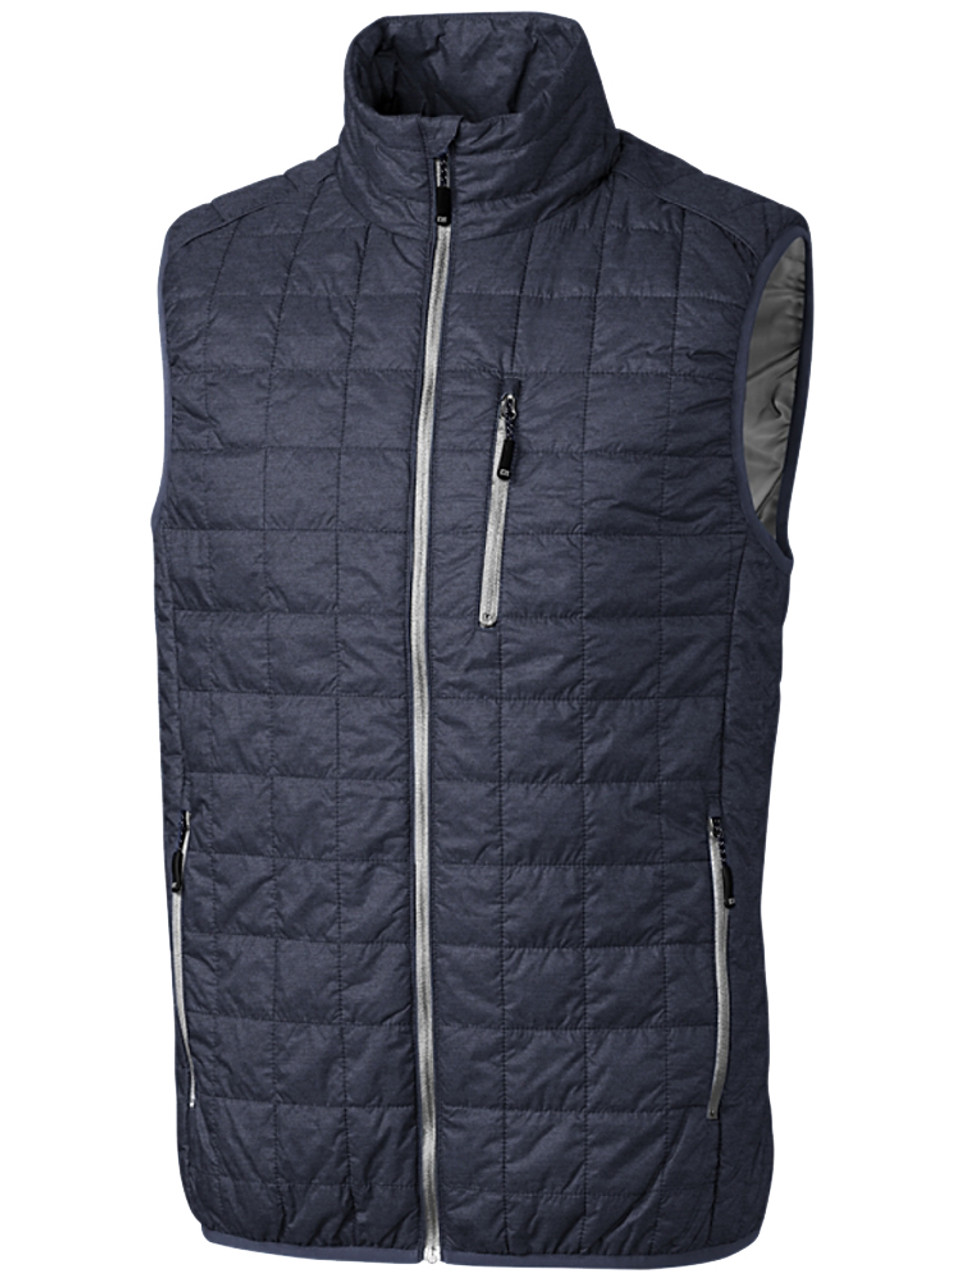 2cd92120 Cutter & Buck Rainier Vest - Anthracite Melange - Mens For Sale ...